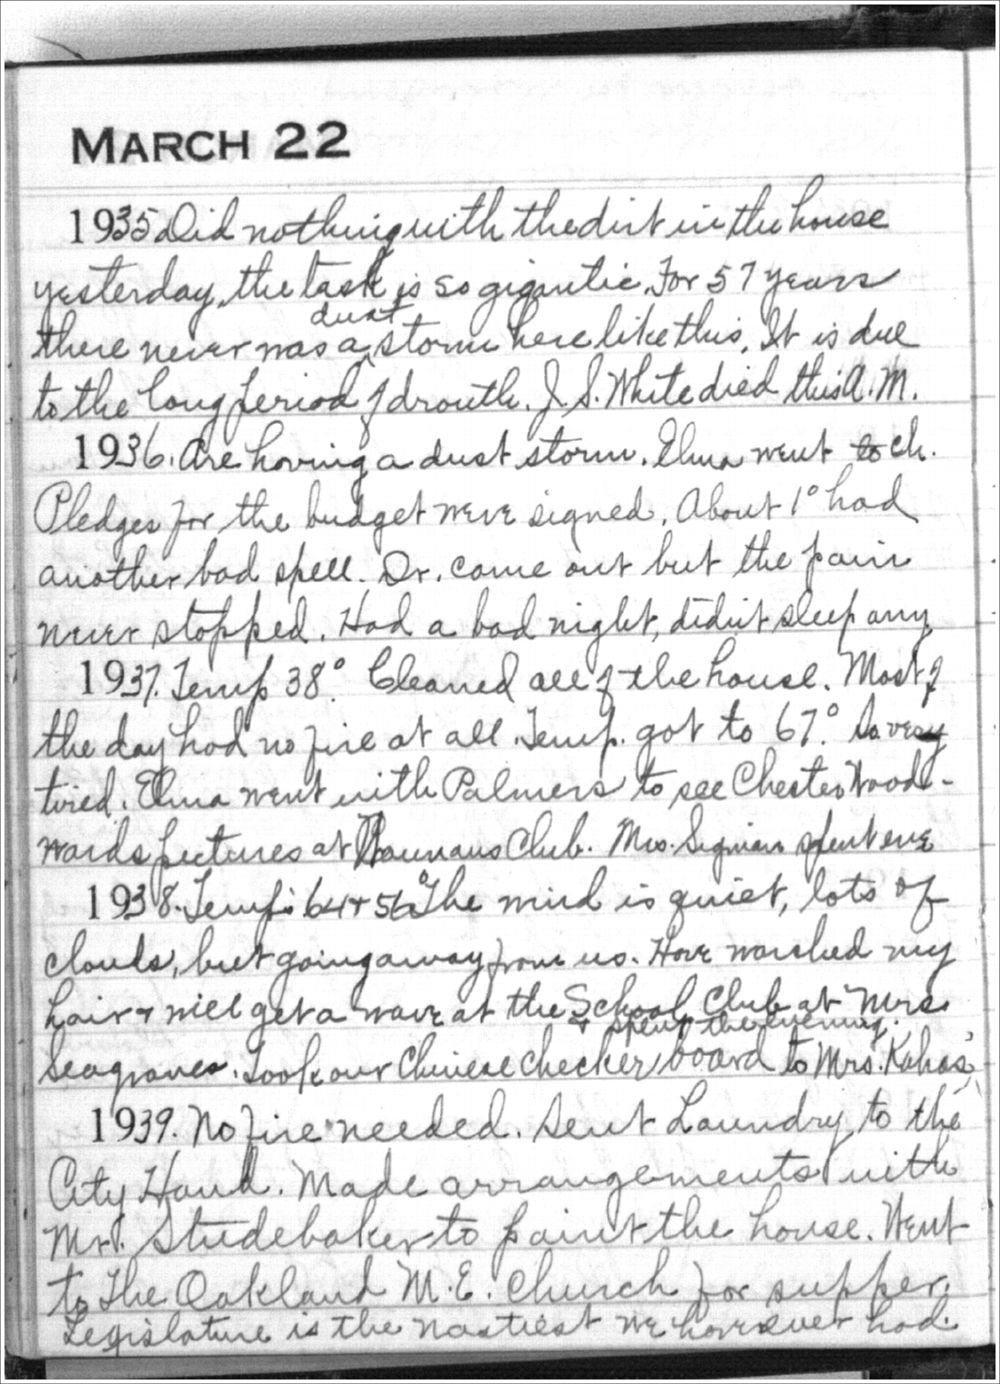 Mabel Holmes diary entries - March 22